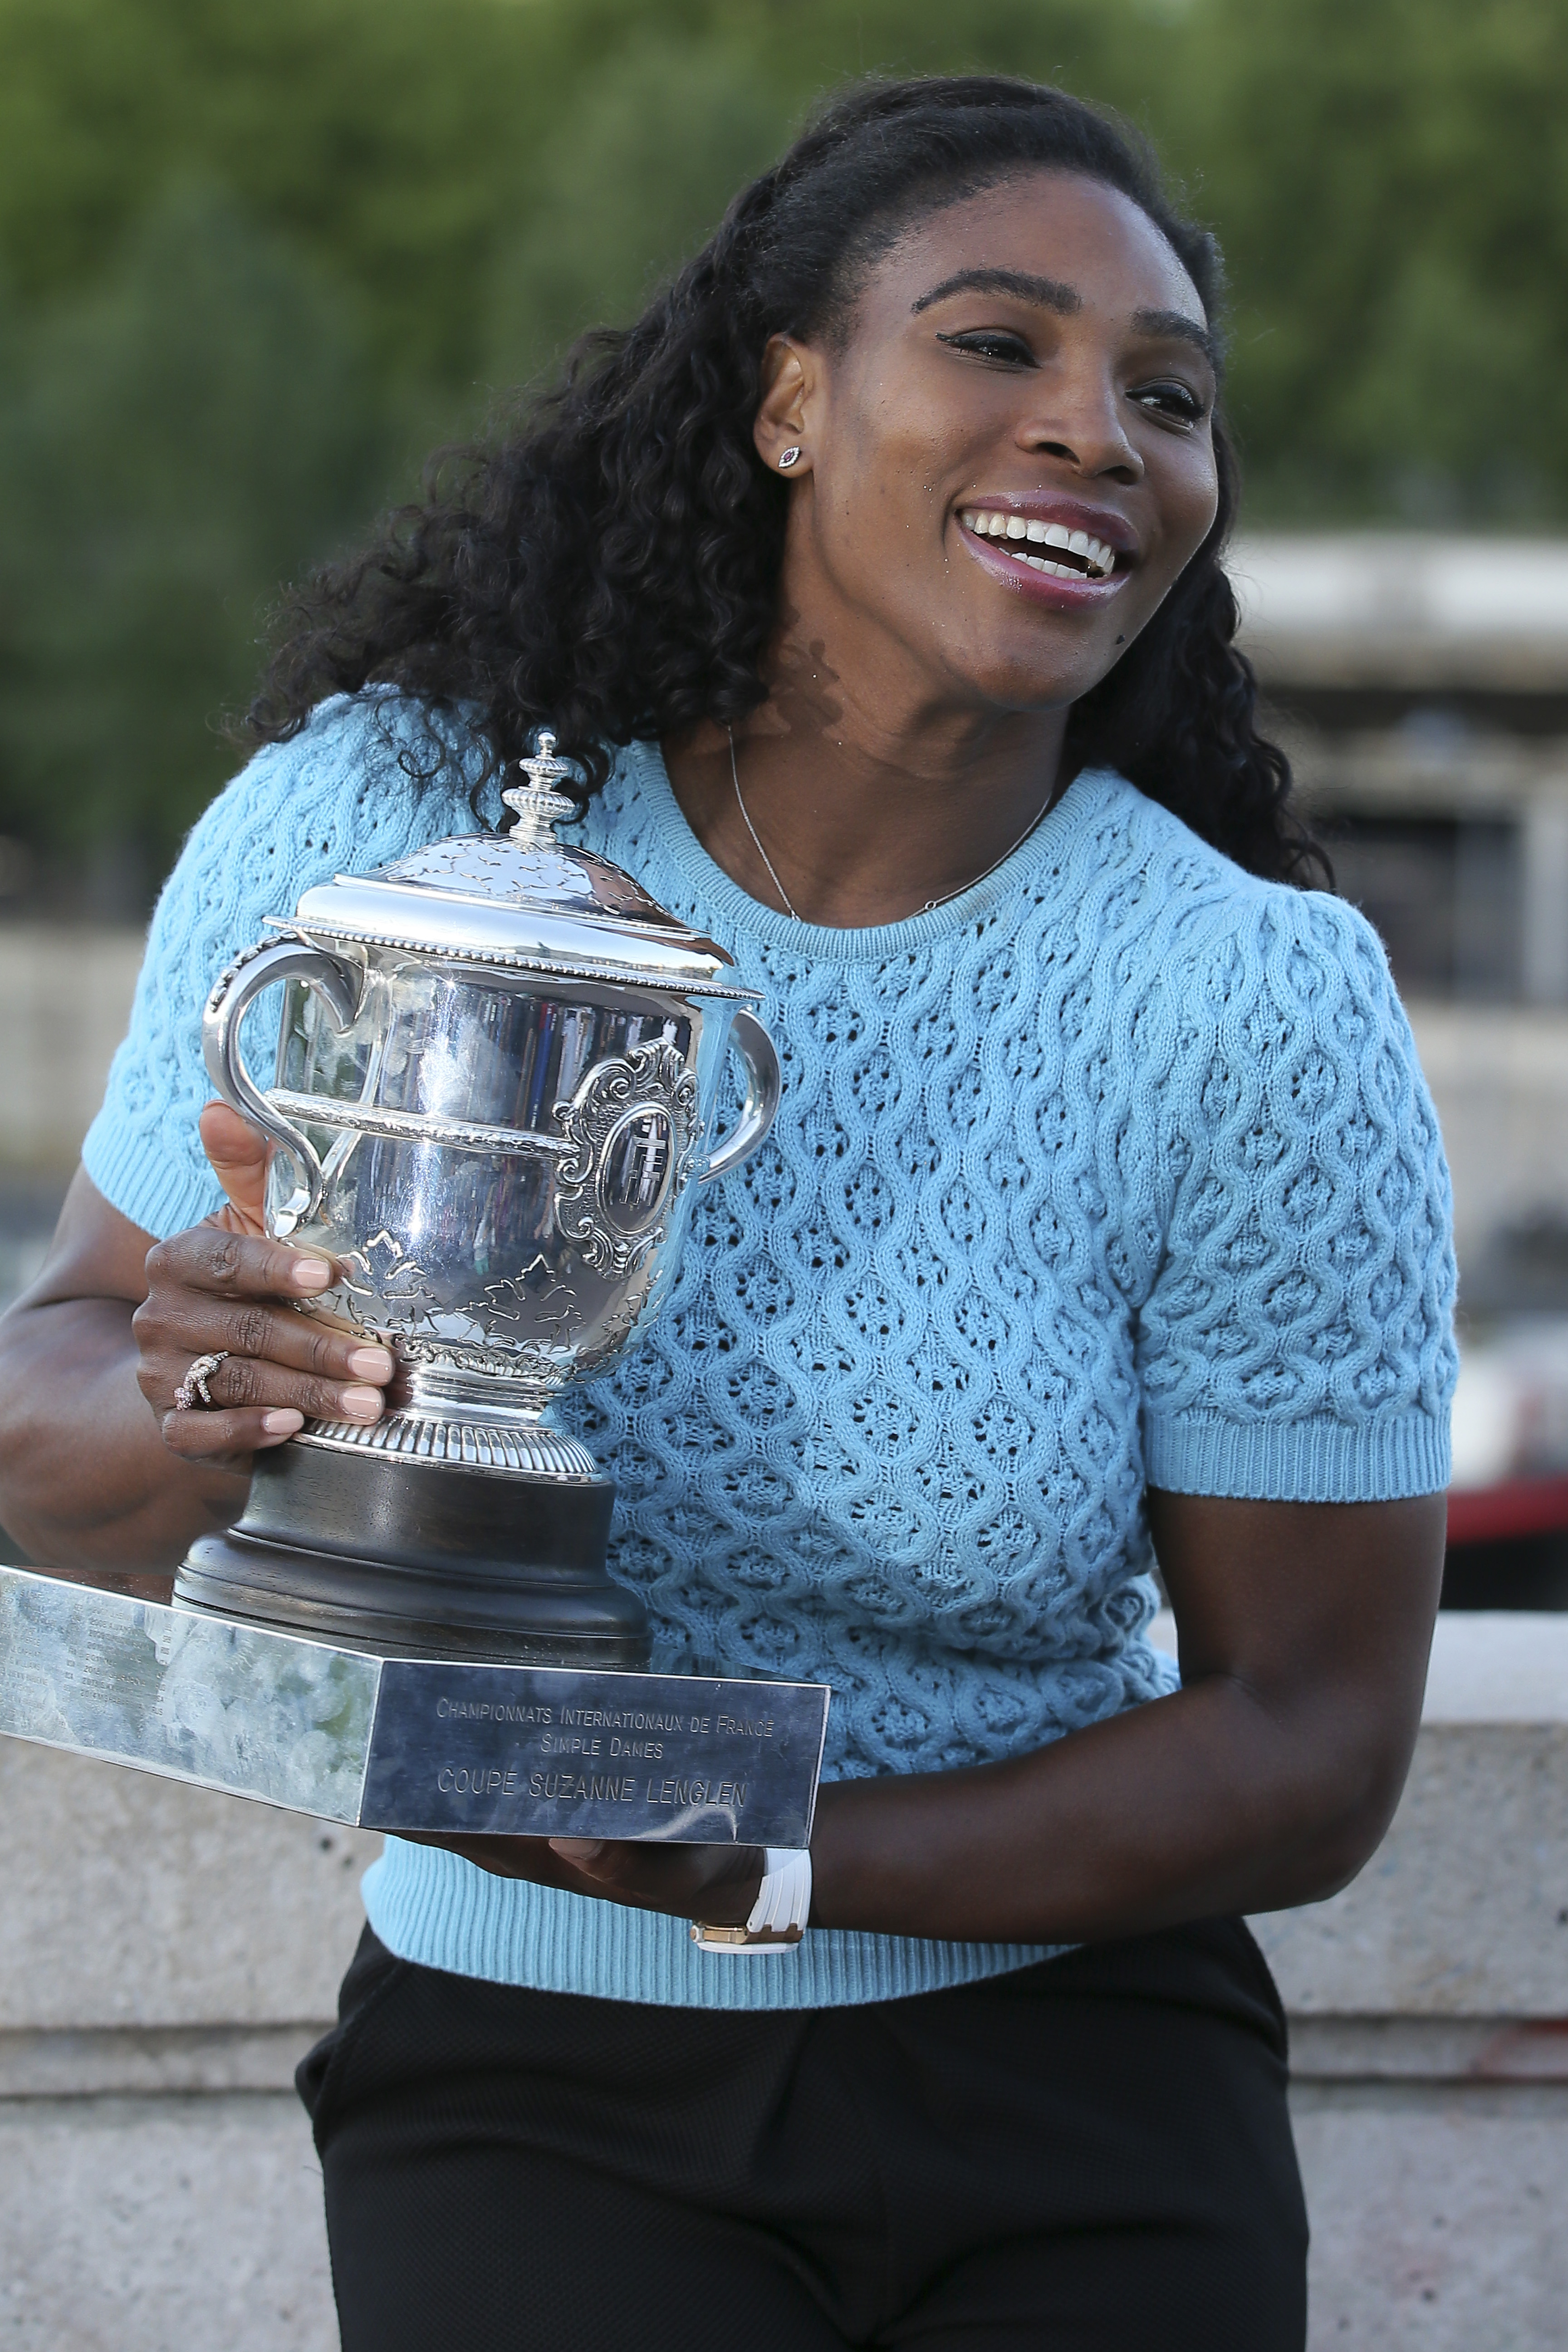 Serena Williams of the U.S. poses with her trophy after defeating Lucie Safarova of the Czech Republic in three sets, 6-3, 6-7, 6-2, in the women's final of the French Open tennis tournament, at Roland Garros stadium in Paris, France, Saturday, June 6, 20